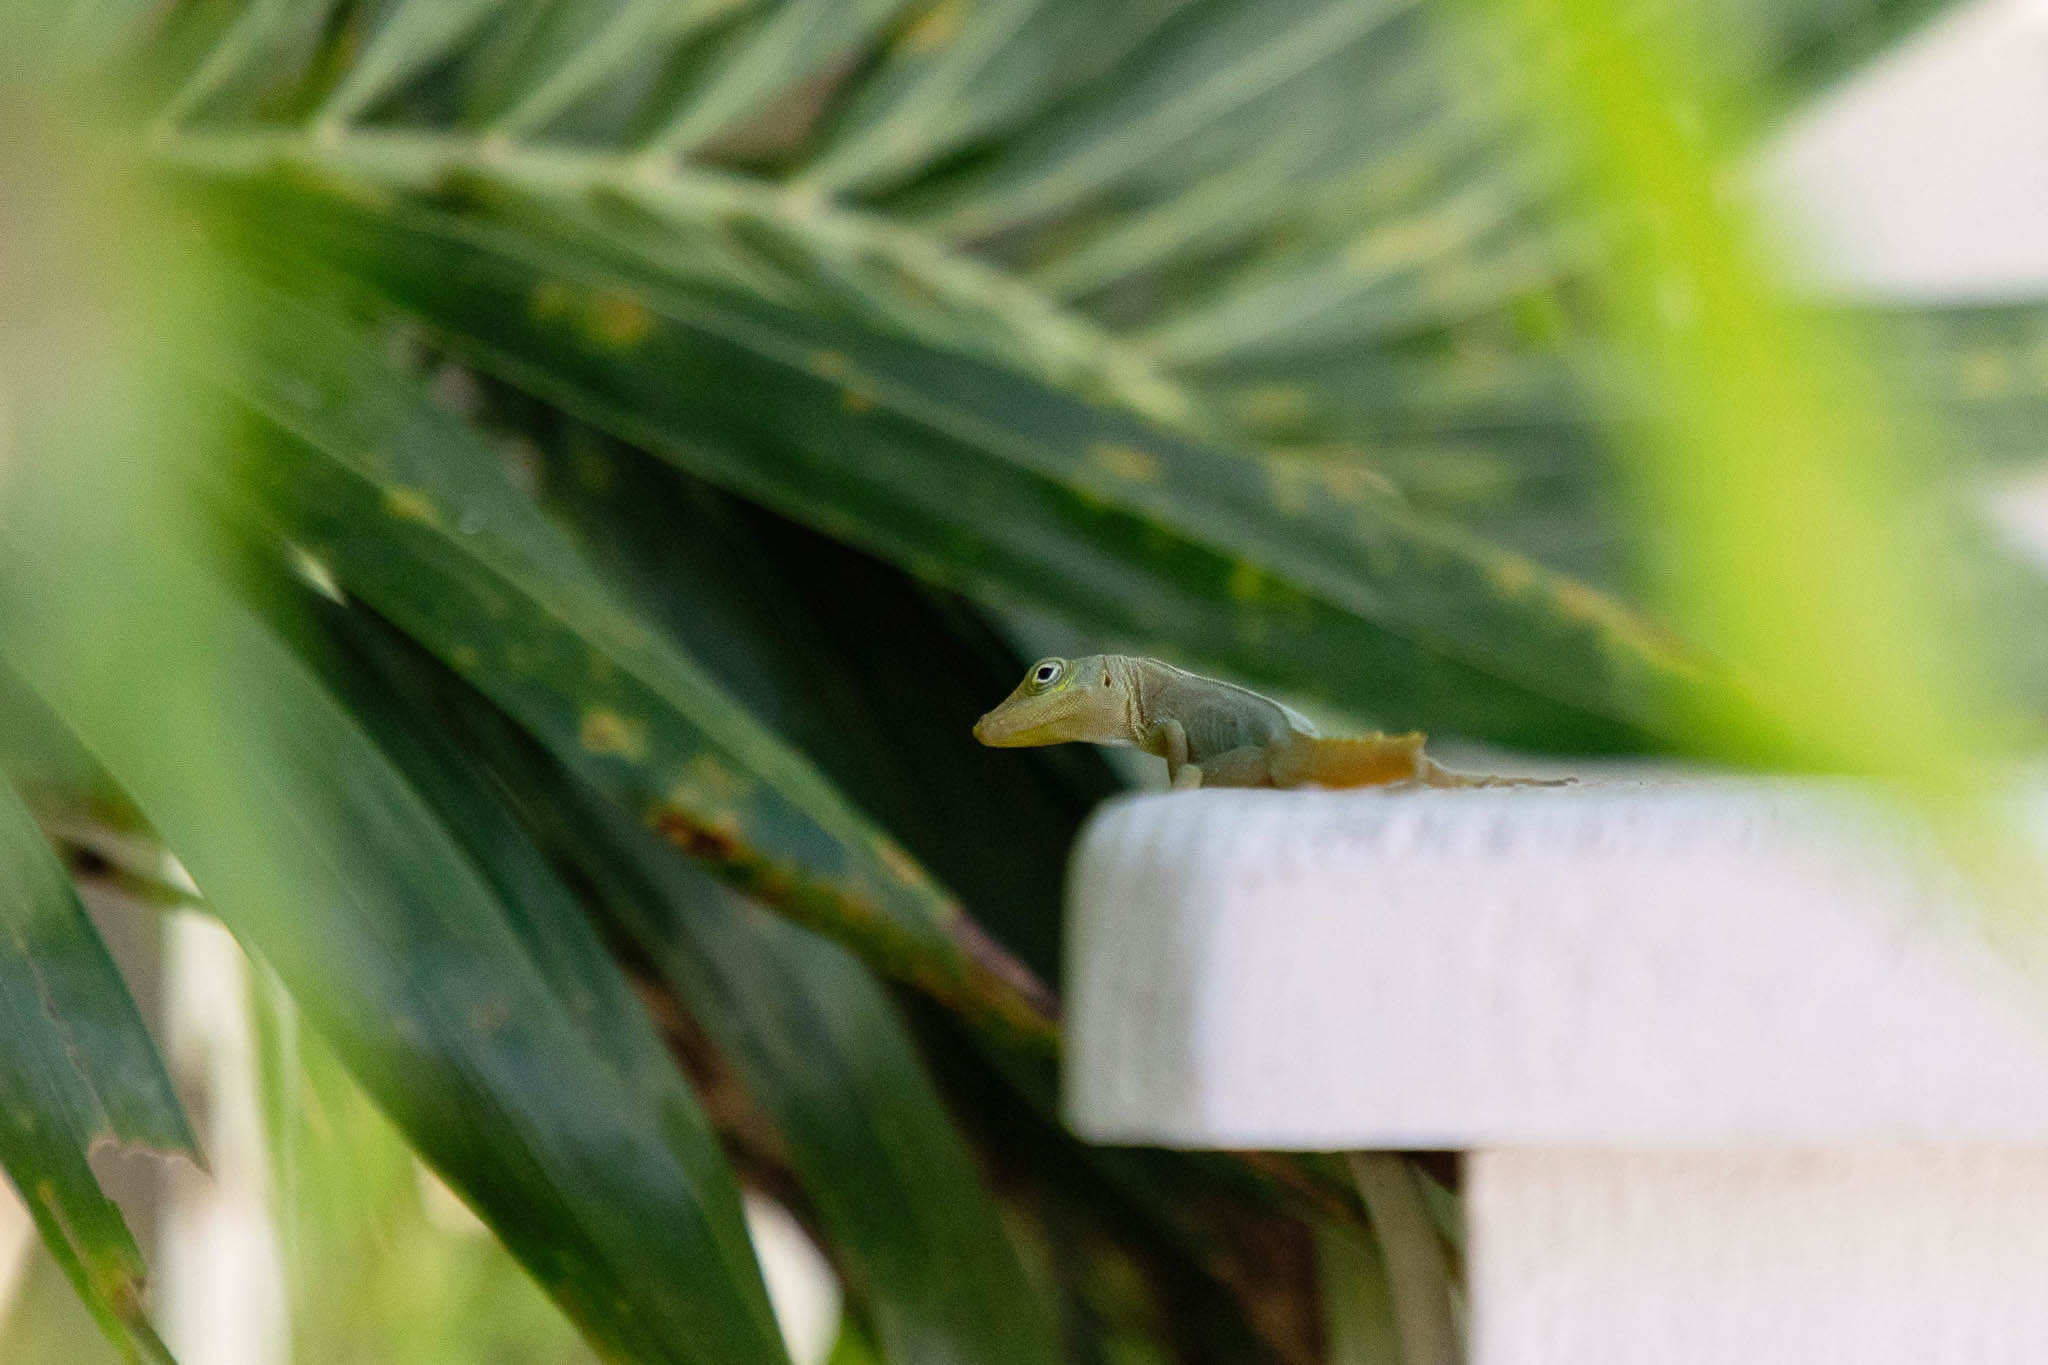 This lizard greeted us on our way out. I remember when I used to pull off lizards' tails when I was a little girl. I was such a tomboy. And then I'd be amazed when I would see the same lizard a couple days later with a new tail stub.